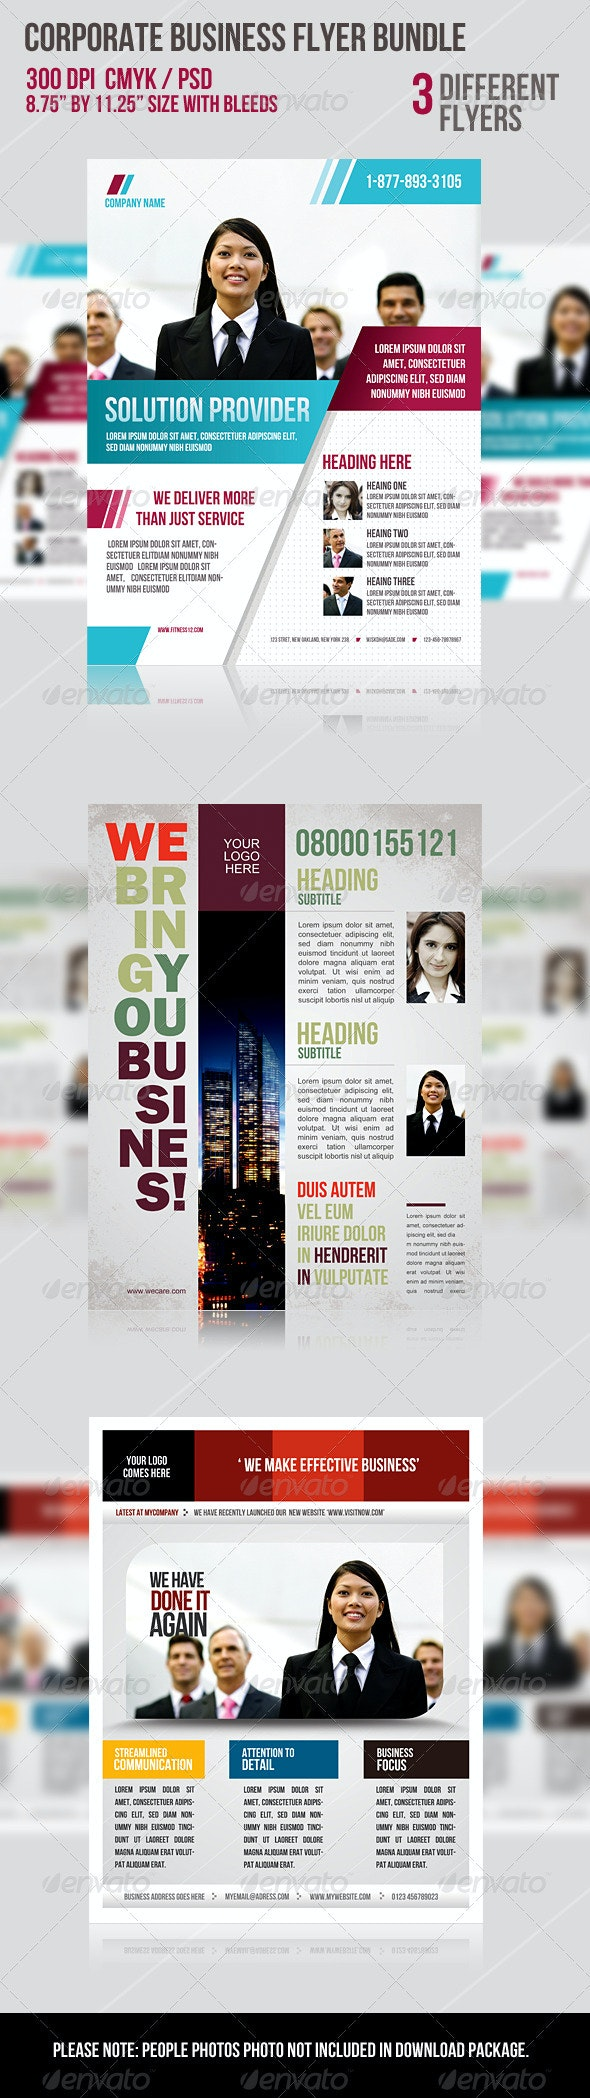 Corporate Business Flyer Bundle - Flyers Print Templates